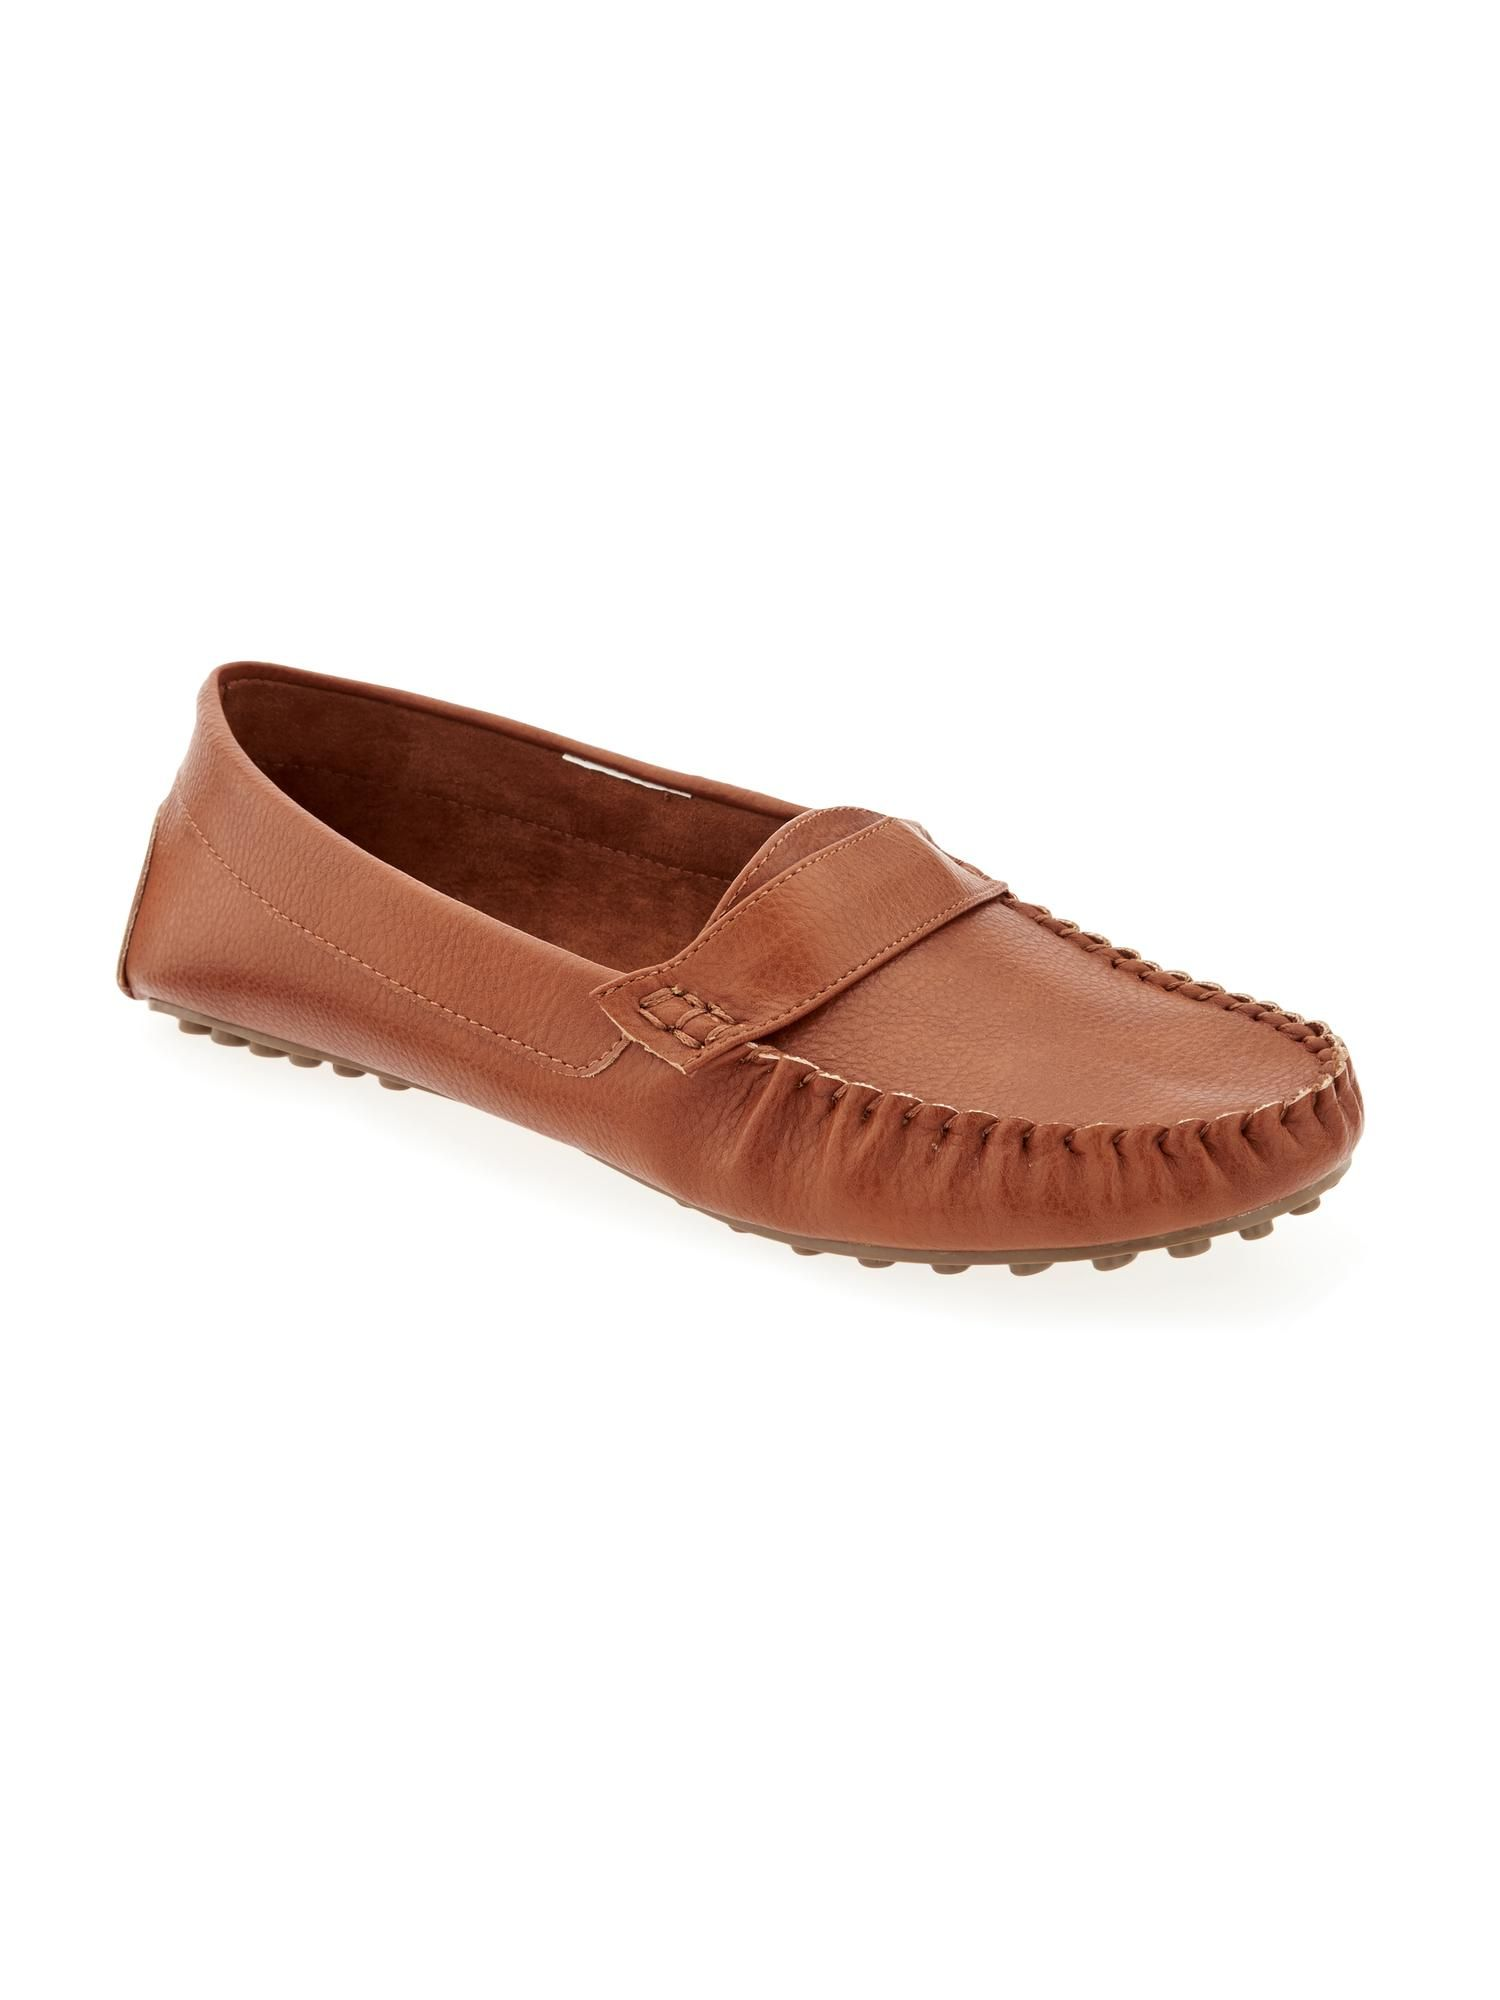 83ee342bea8 Faux-Leather Driving Loafers for Women